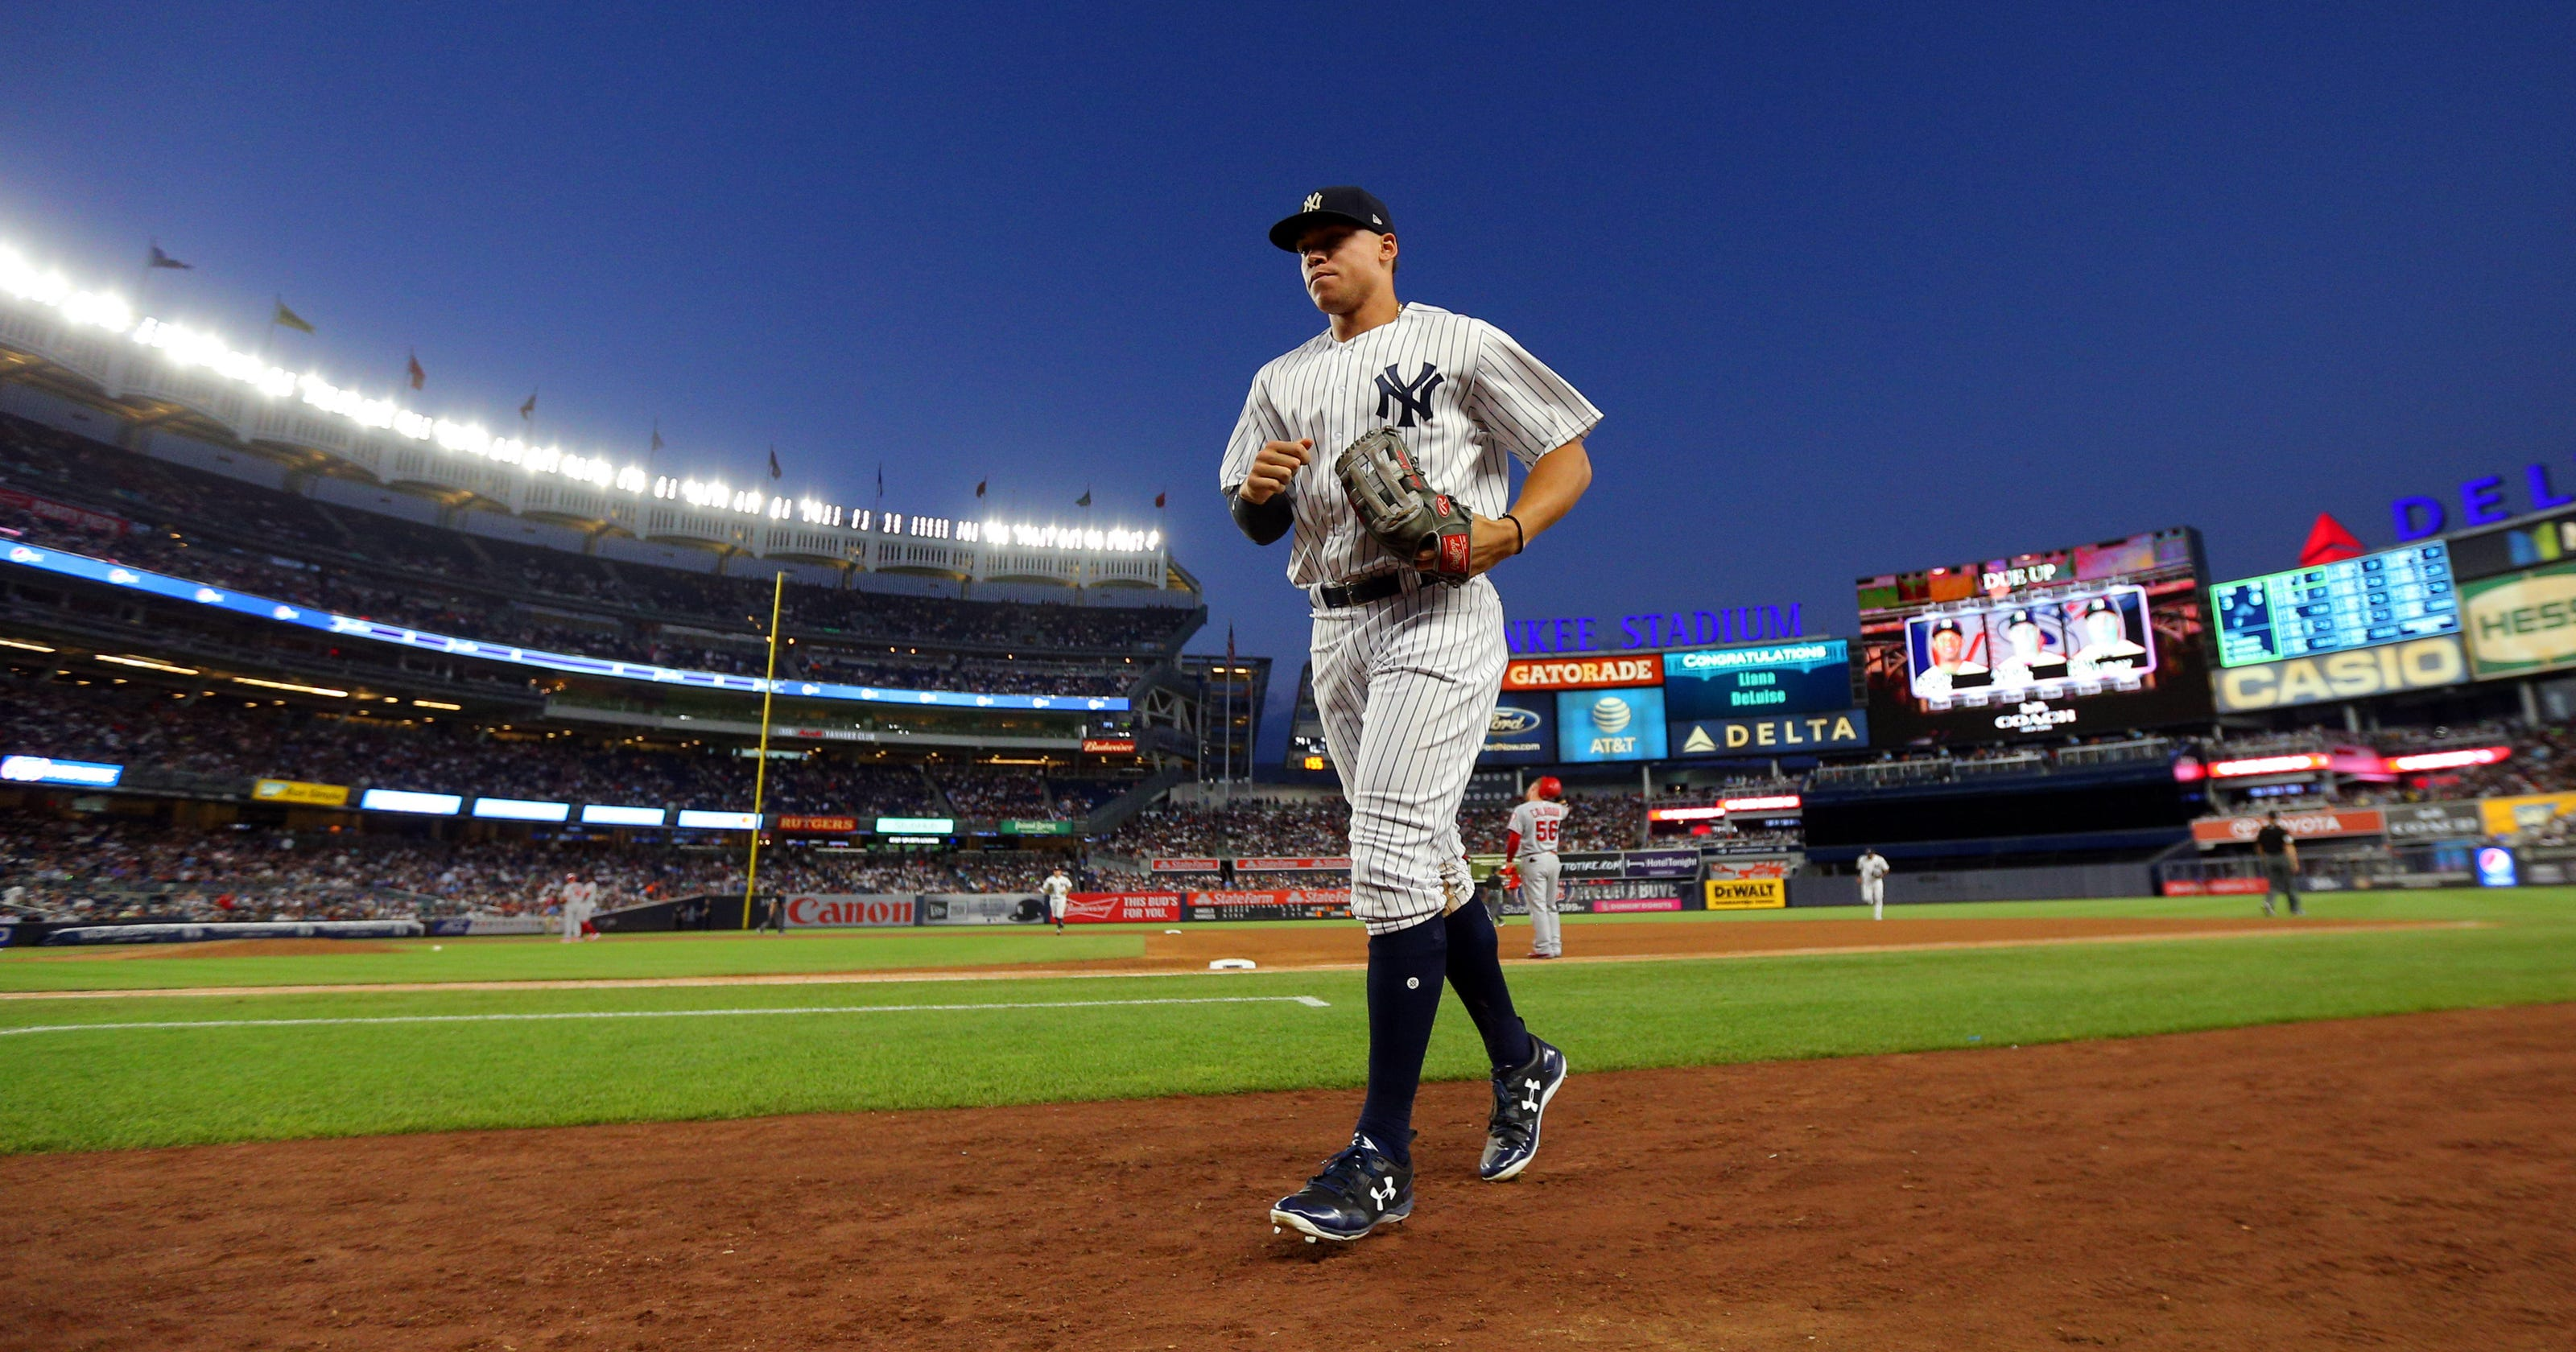 83d0bc65afda5 6 things you need to know about Yankees star Aaron Judge